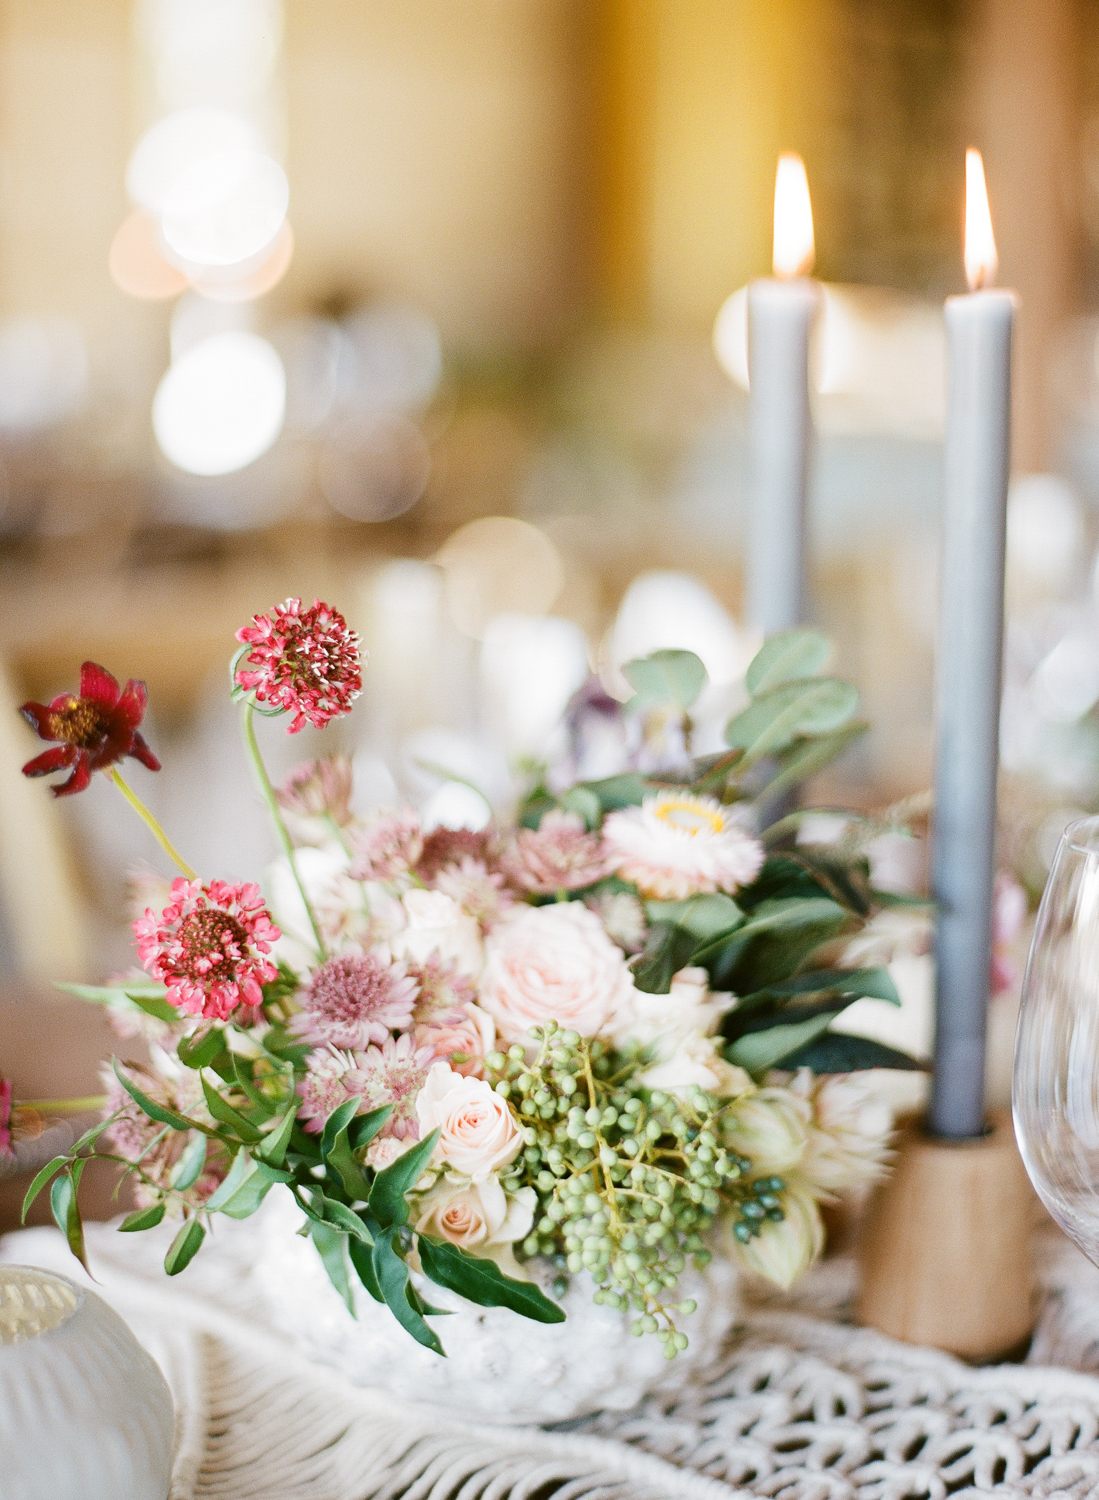 Blush, burgundy, and lilac blooms on a macrame table runner at the Napa wedding reception; Sylvie Gil Photography